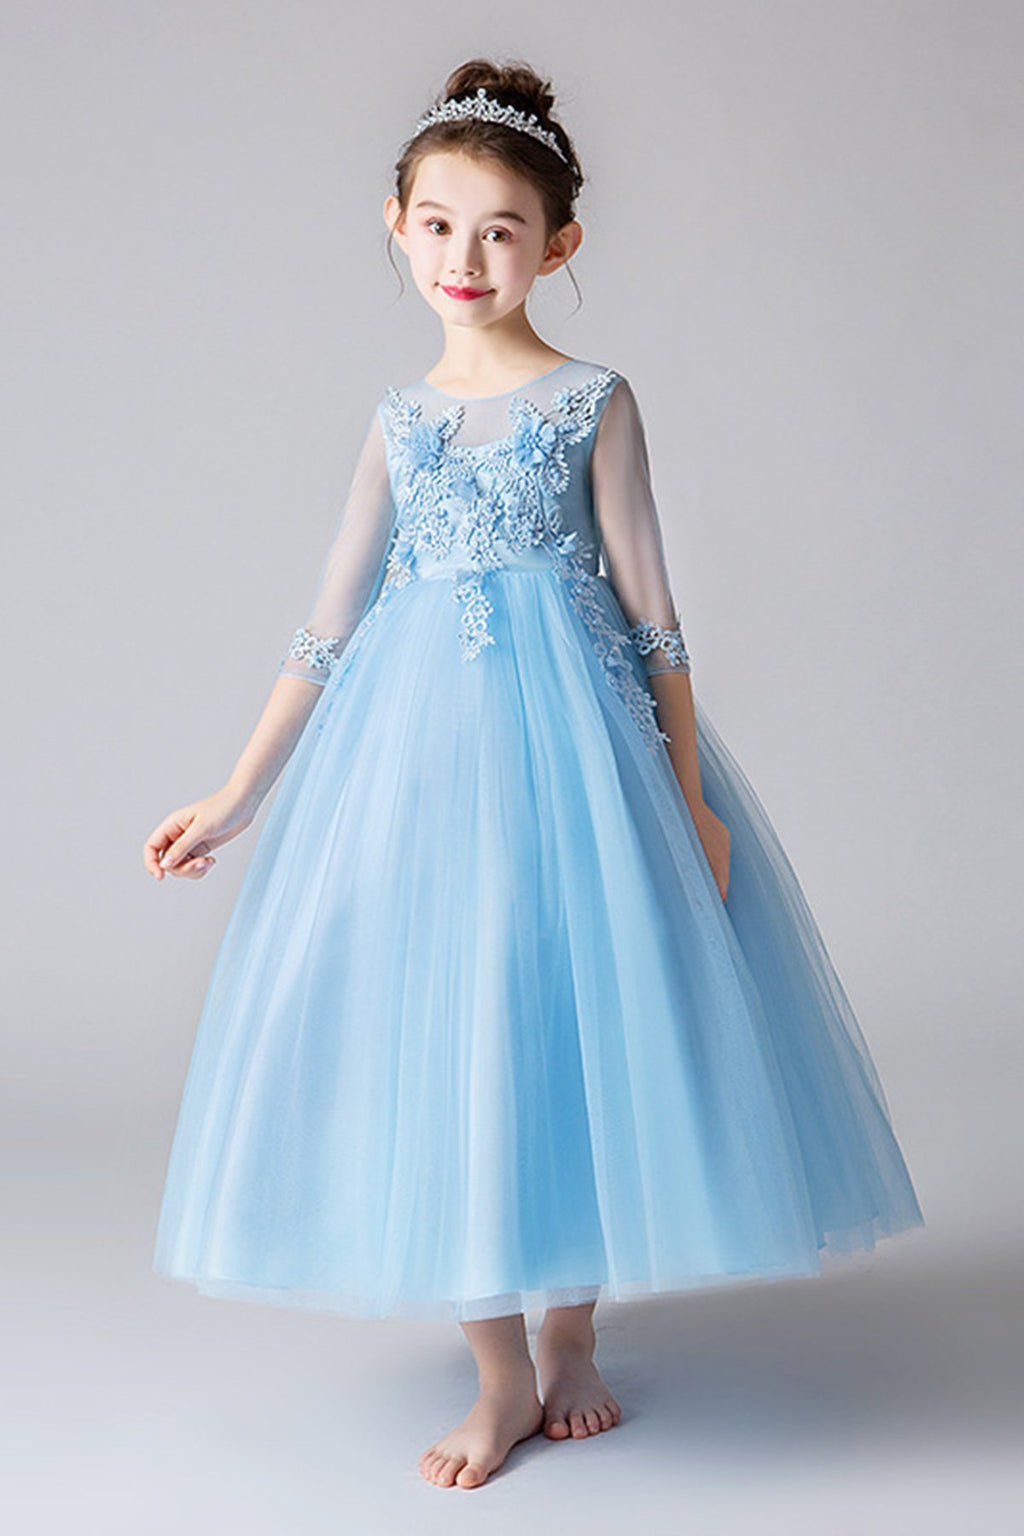 A-line 3/4 Sleeve Ankle Length Princess Dress Flower Girl Dresses 120cm Blue